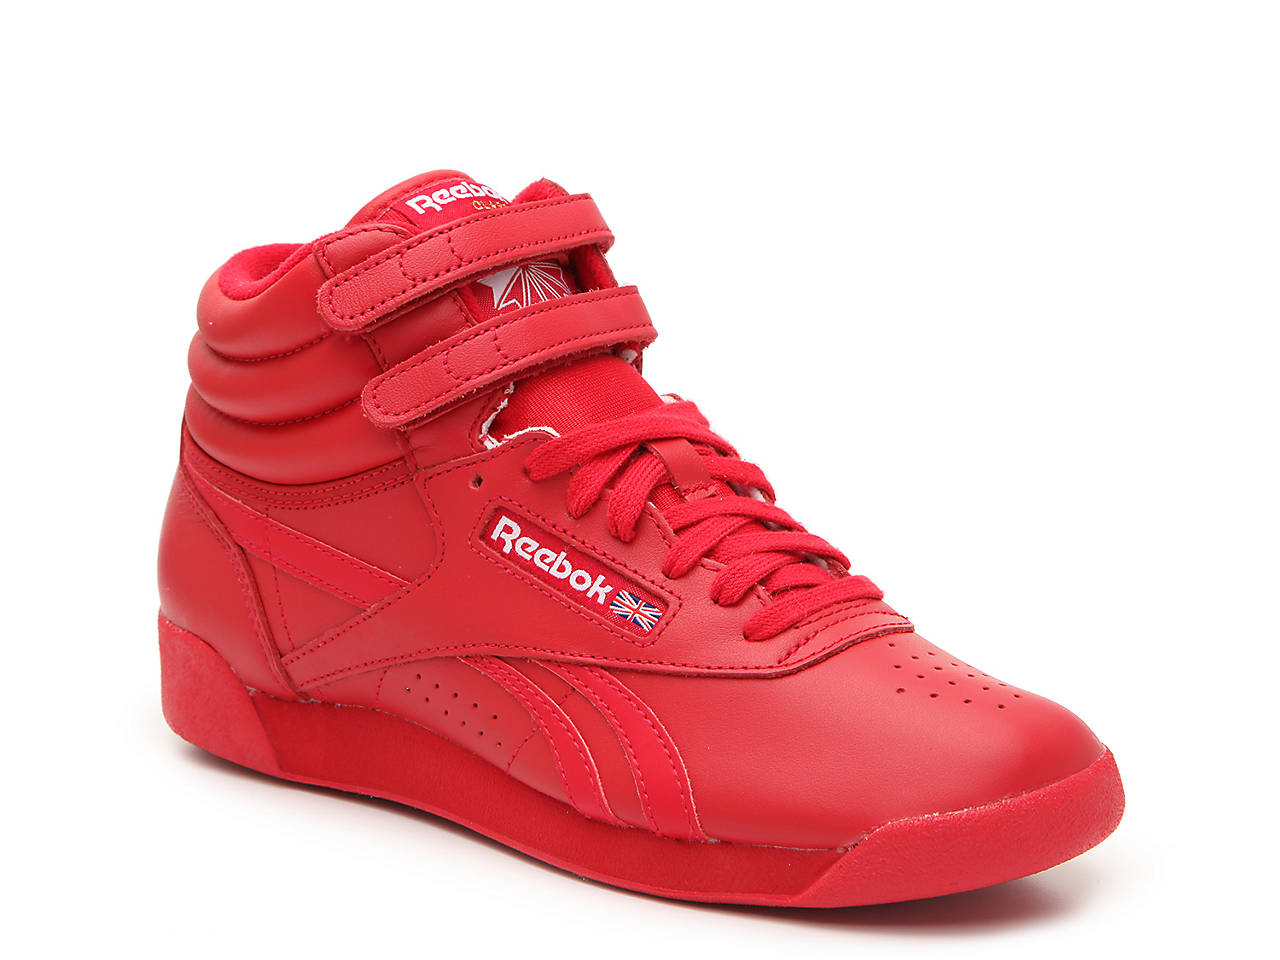 5a87d4e58d24f Reebok Freestyle Hi High-Top Sneaker - Women s Women s Shoes